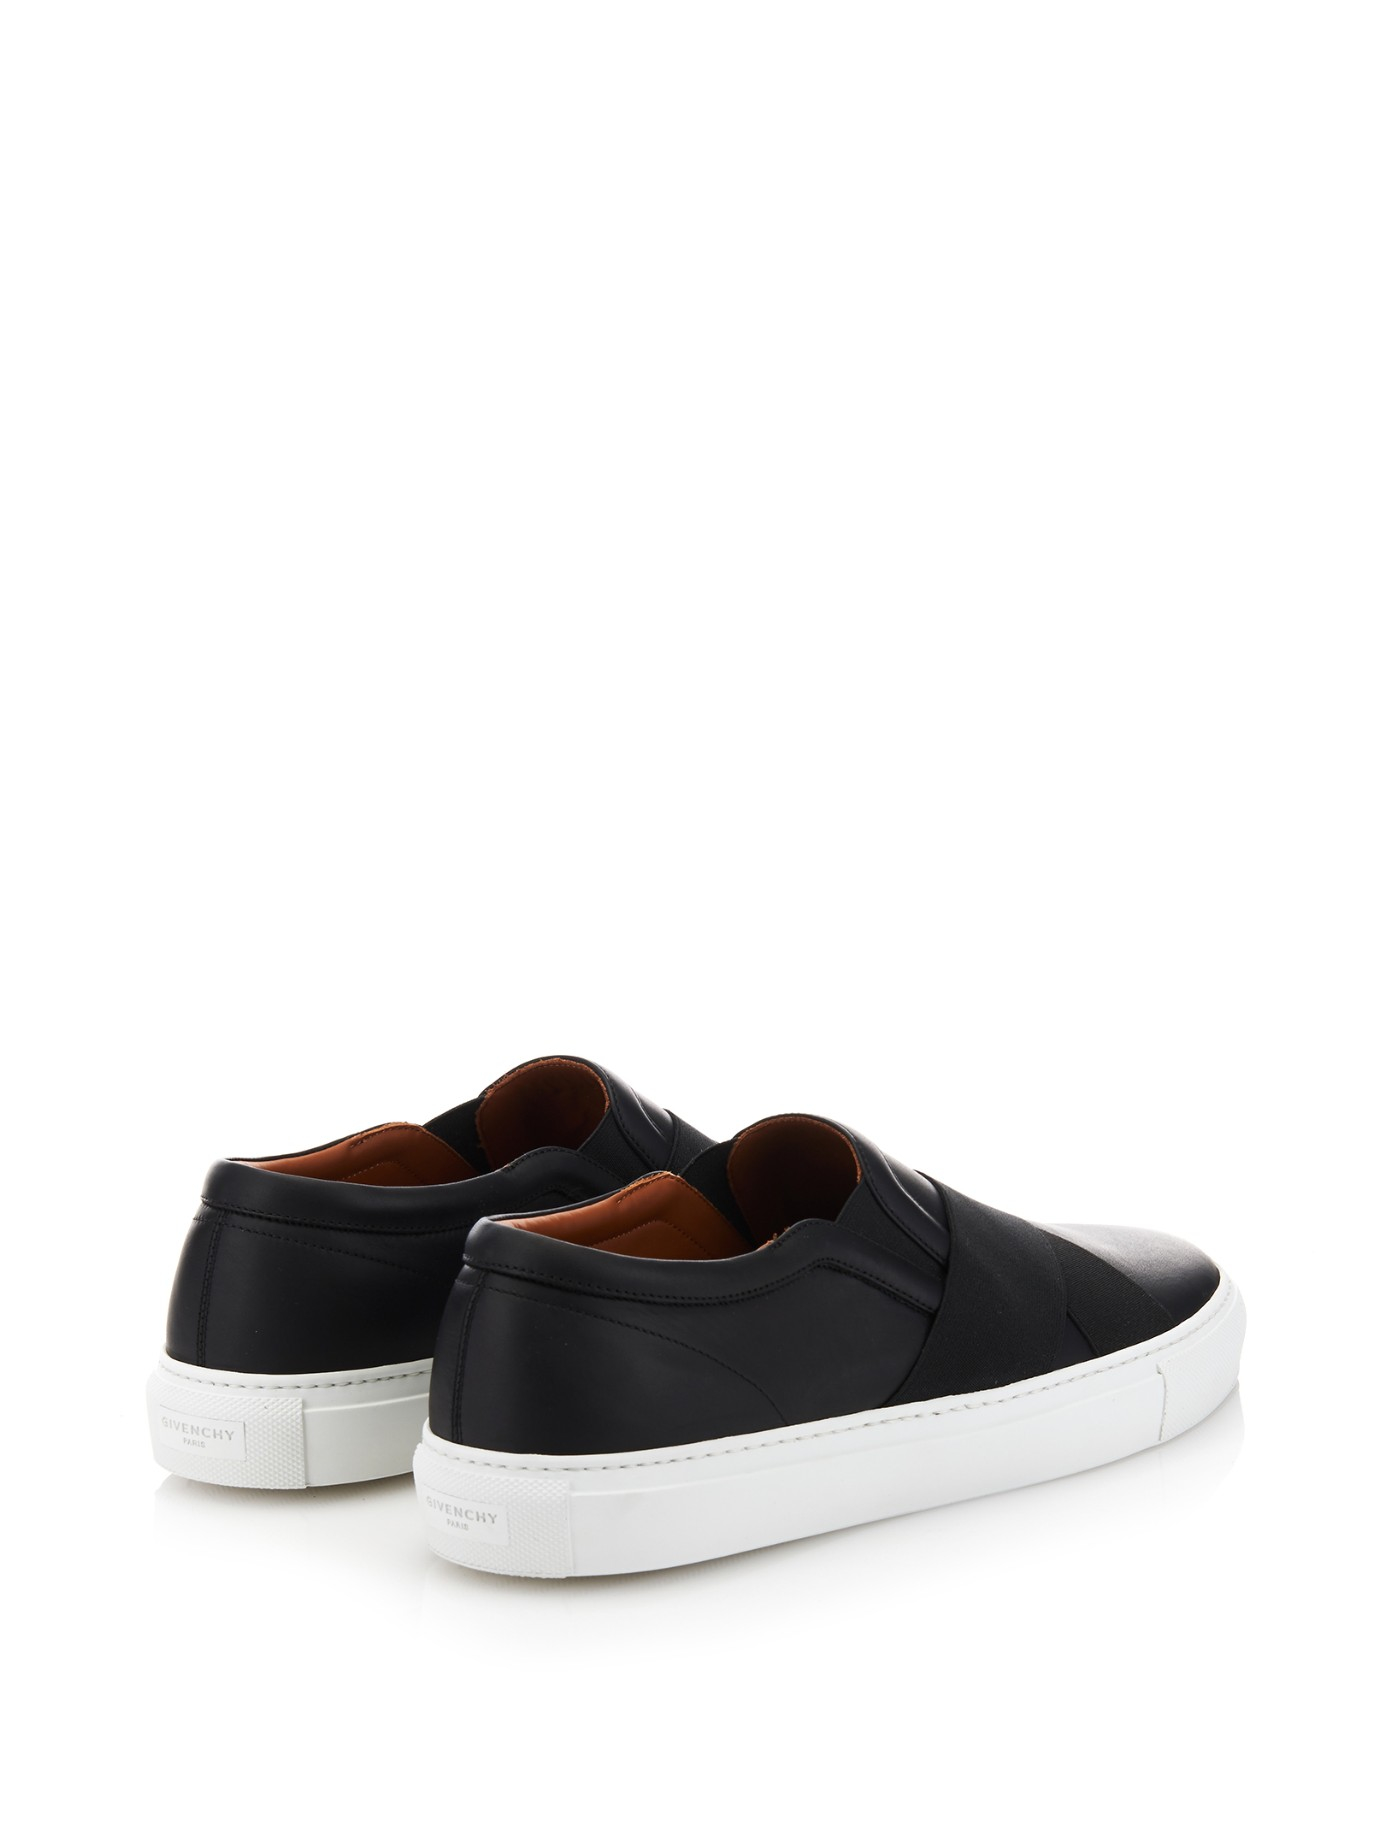 Givenchy Sneaker slip on Skate Elastic leather black